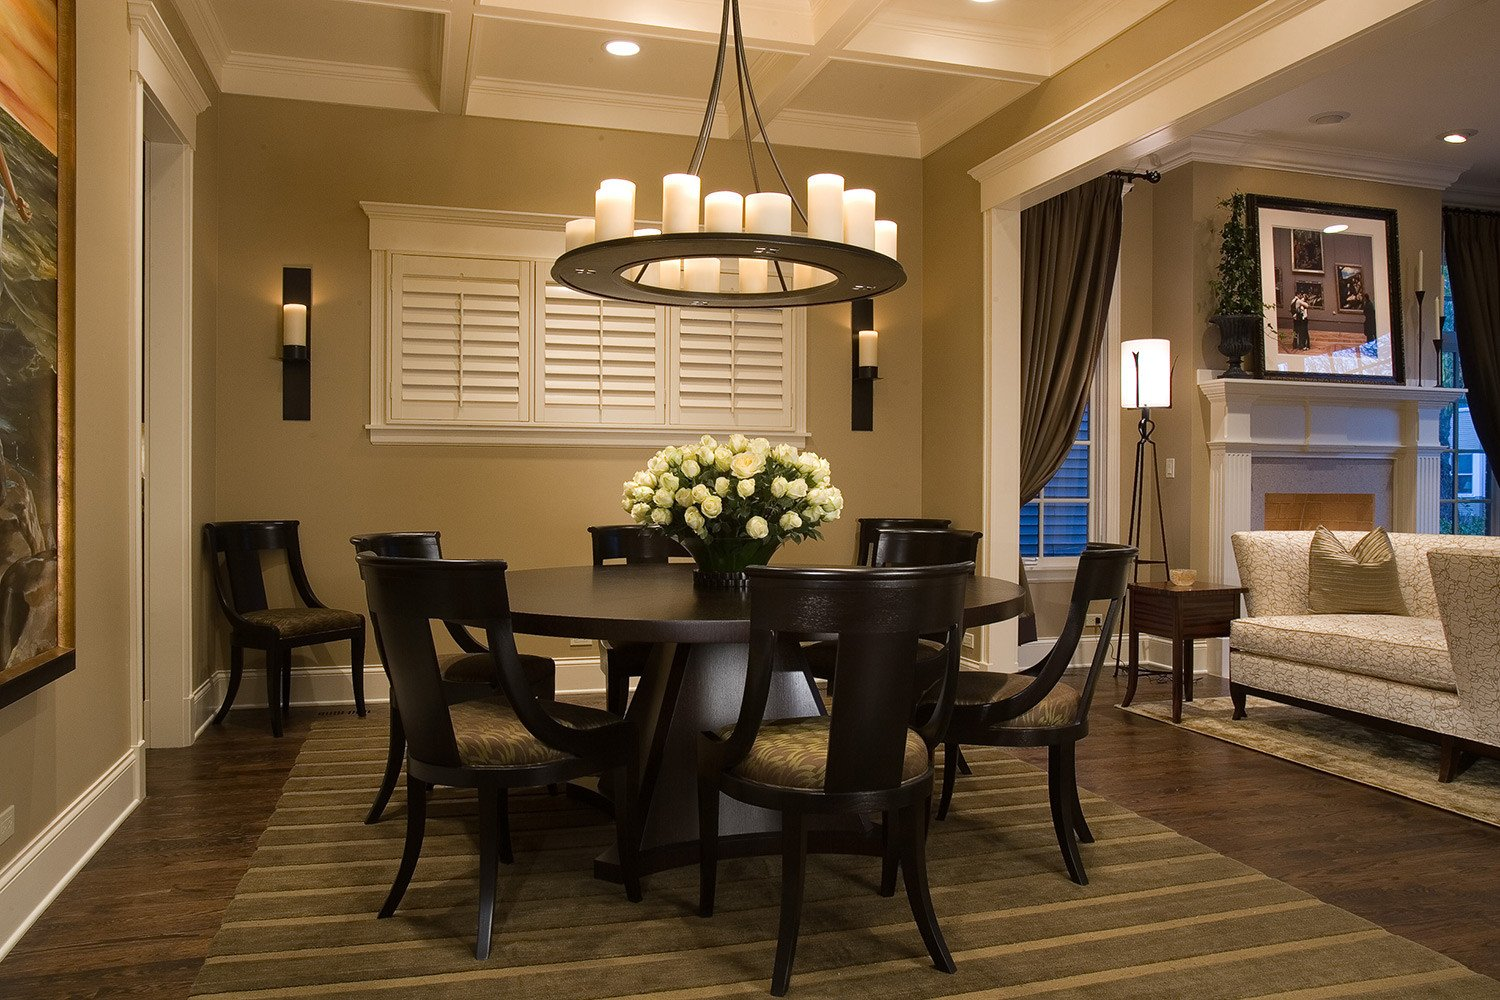 Formal Dining Room Table Decor Luxury Round Dining Table to Decorate Your Home